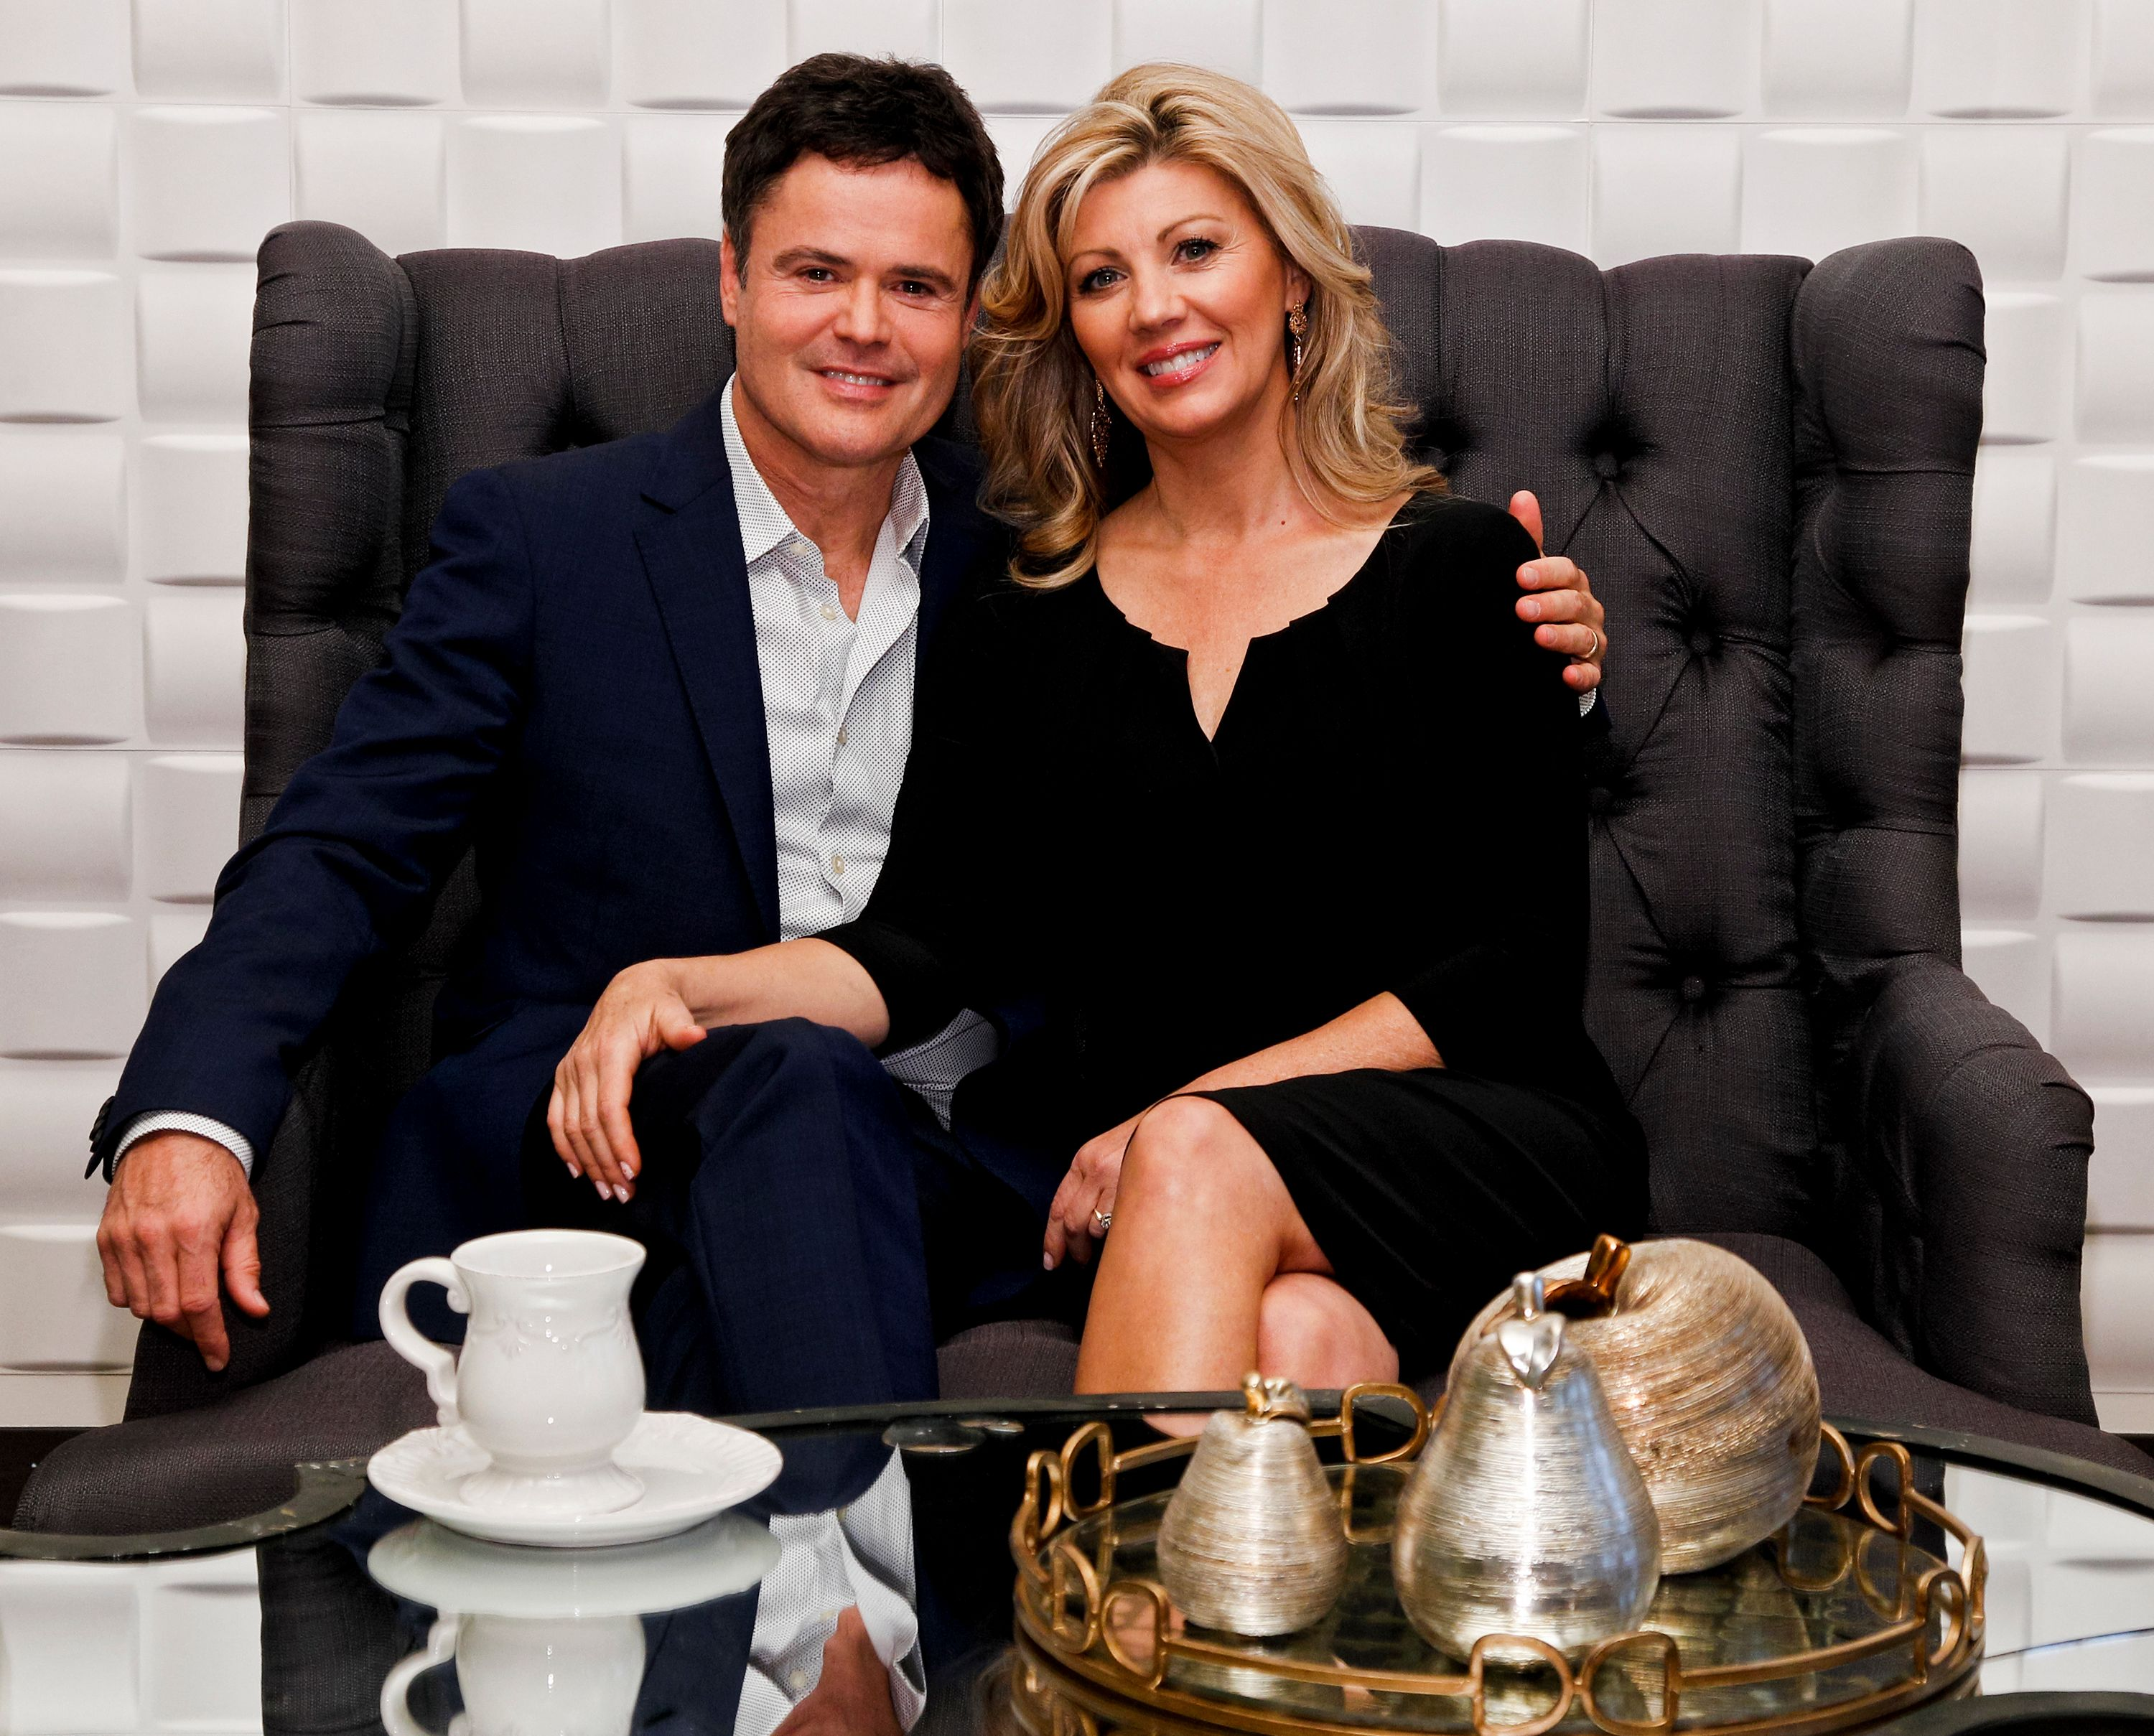 Donny and Debbie Osmond at the launch of Donny Osmond Home on September 23, 2013 | Photo: Getty Images